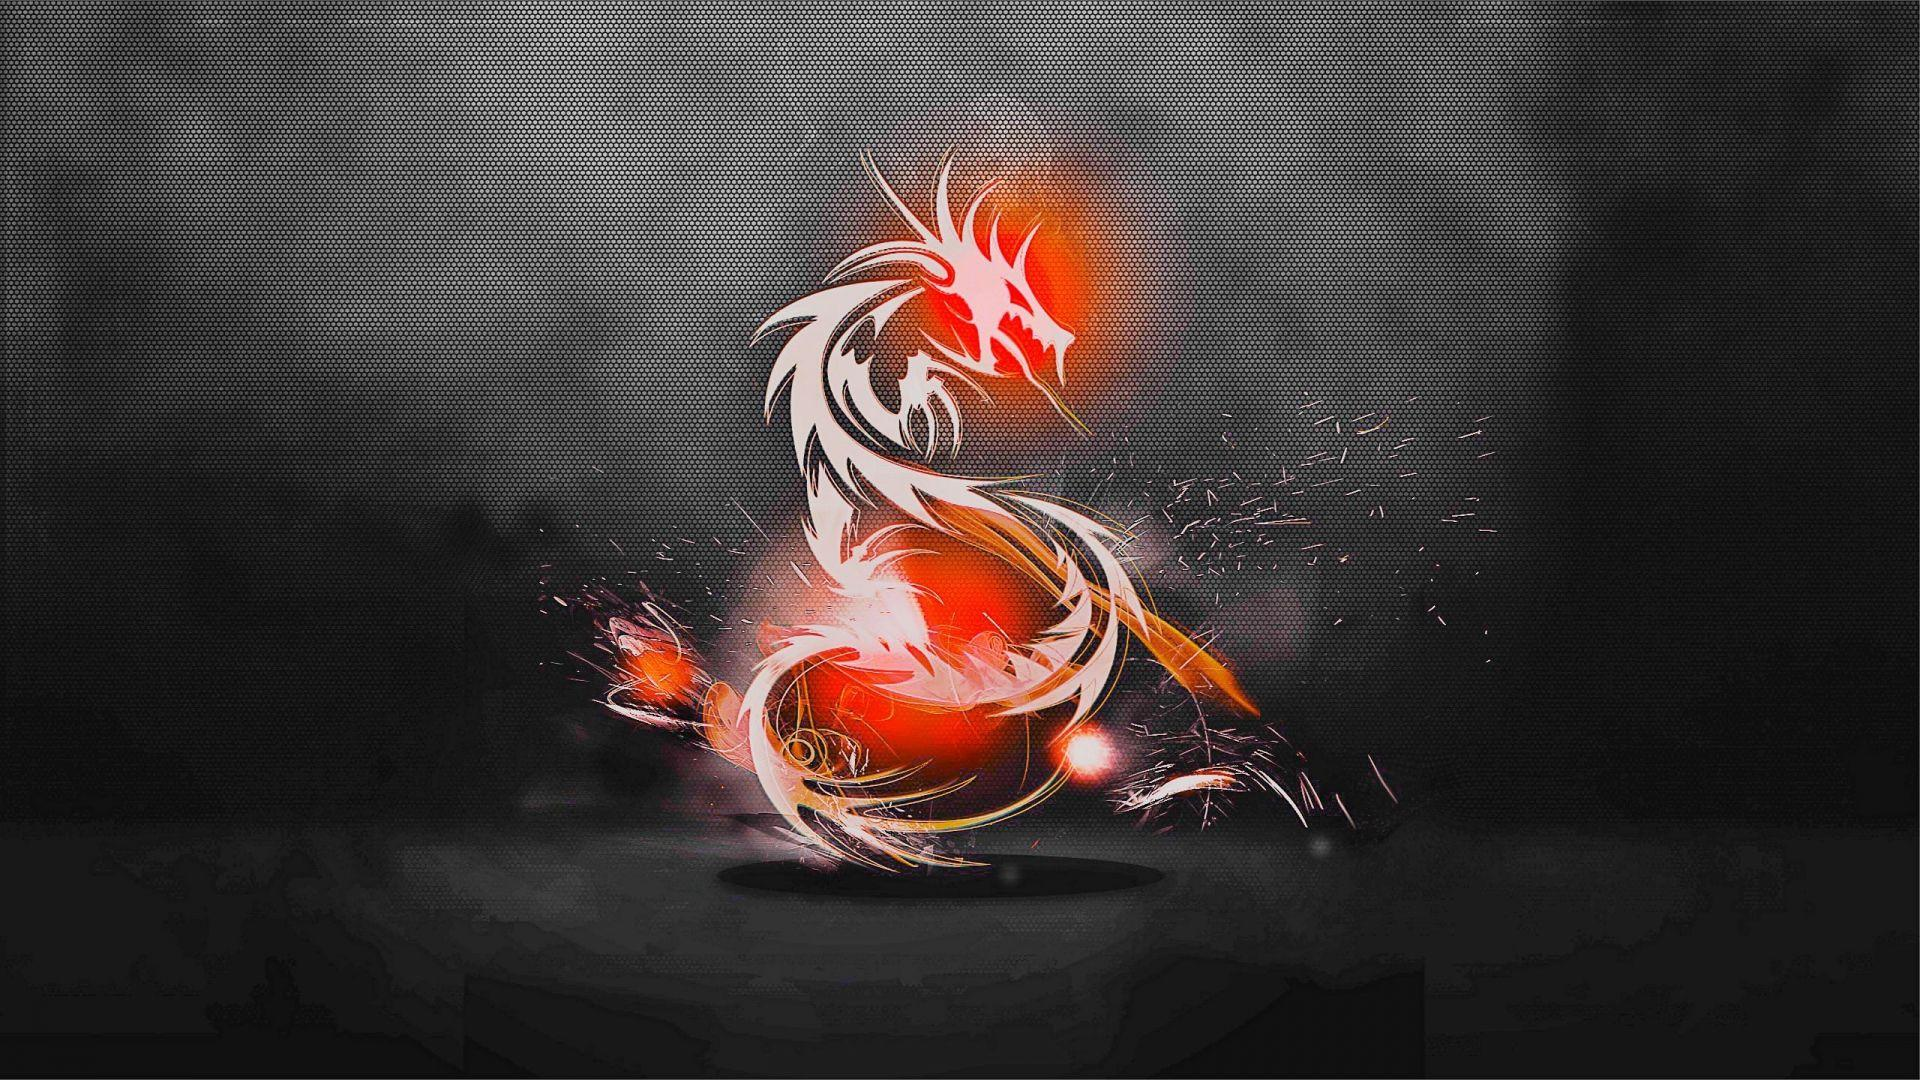 Download Wallpapers 1920x1080 dragon, background, light, shadow Full